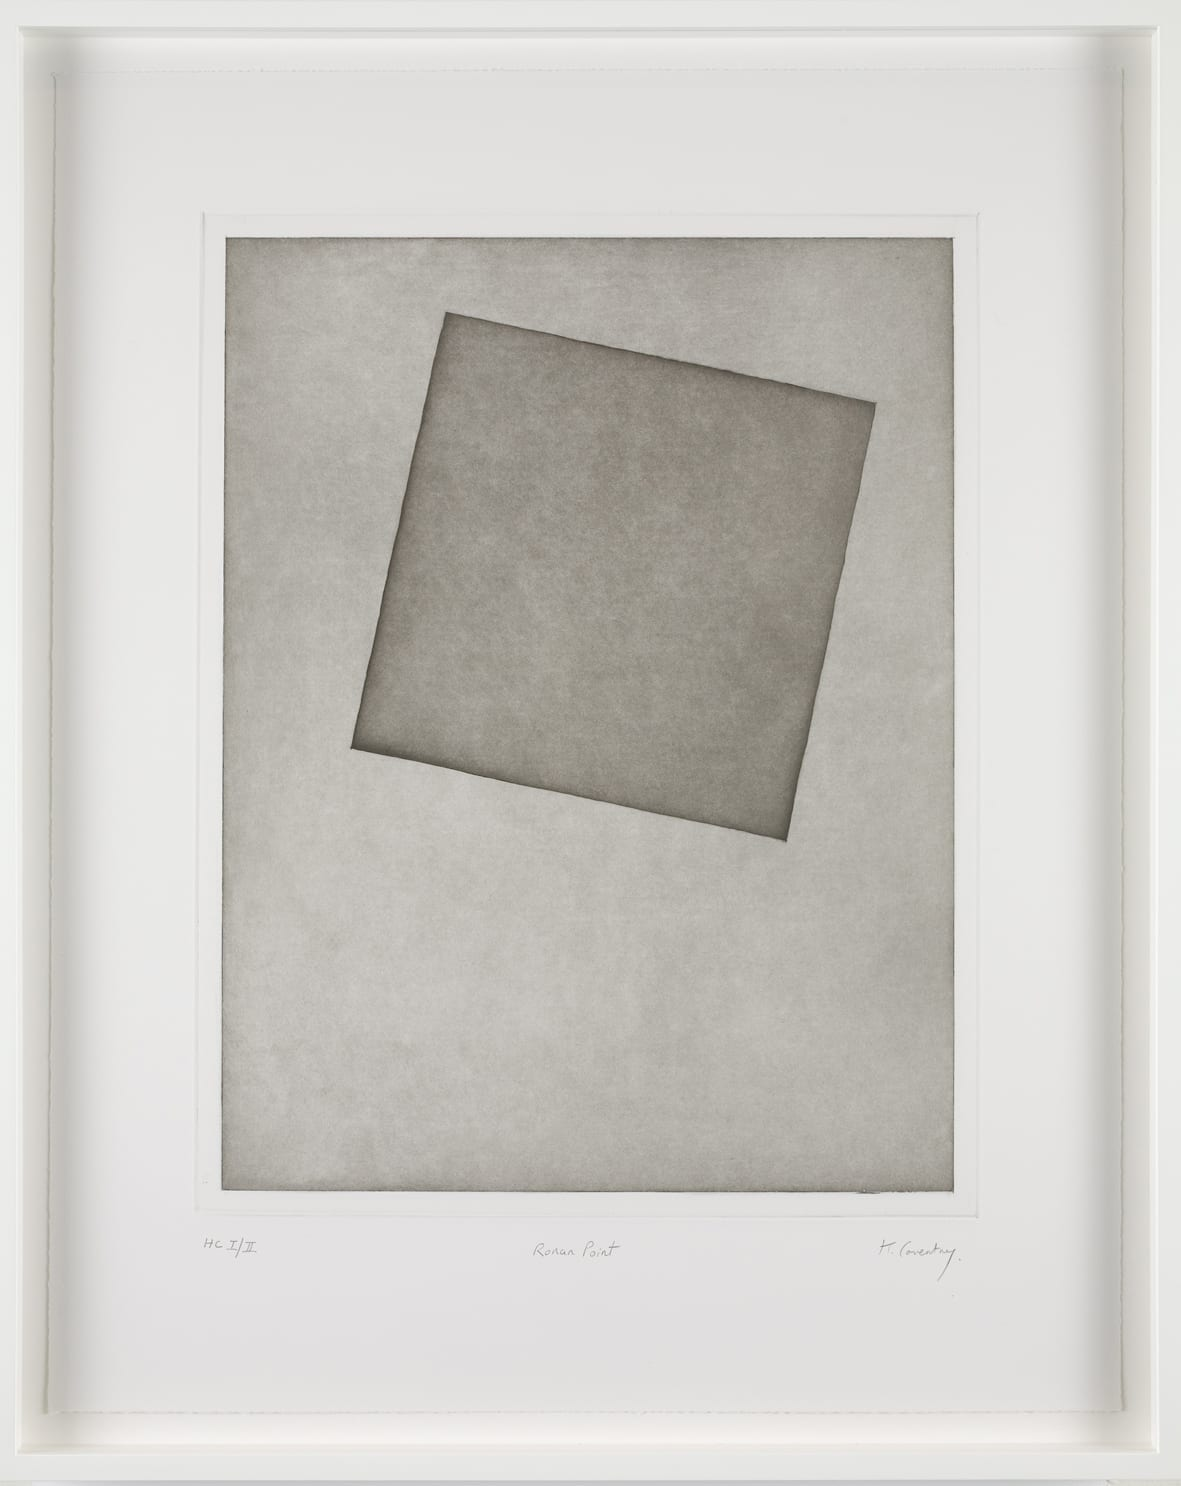 Keith Coventry Ronan Point, 2008 Etching on Somerset 300gsm Signed, titled and numbered 61 x 48.5 cm Edition of 50